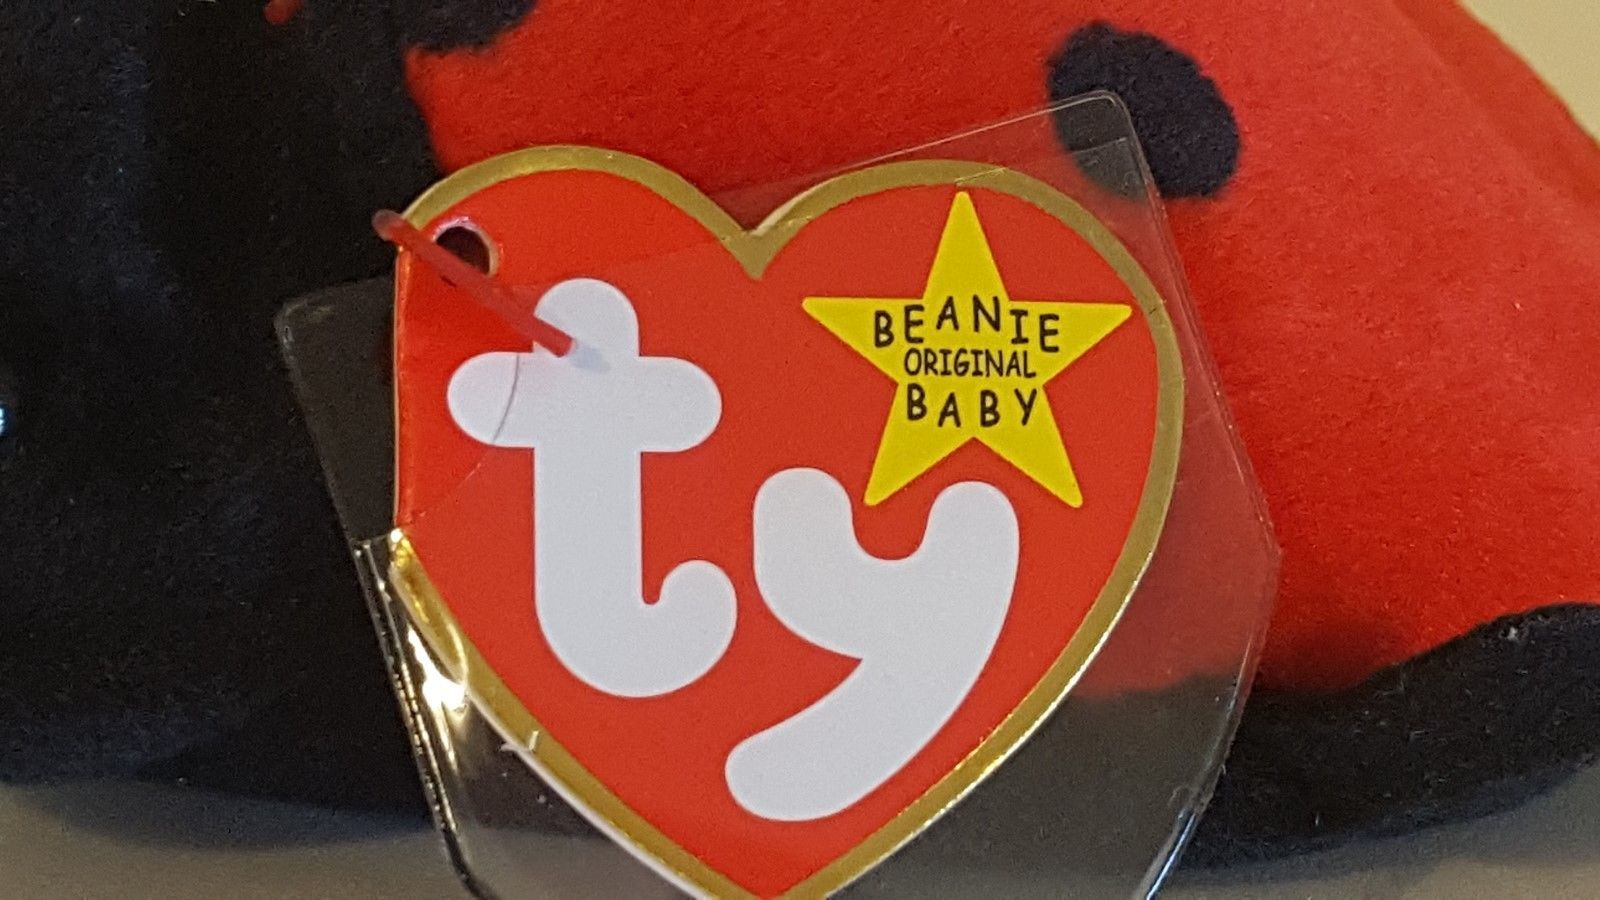 ed64409a0fa TY ORIGINAL BEANIE BABY 1993 SN 4040 – LUCKY THE LADY BUG – RETIRED - MWMT